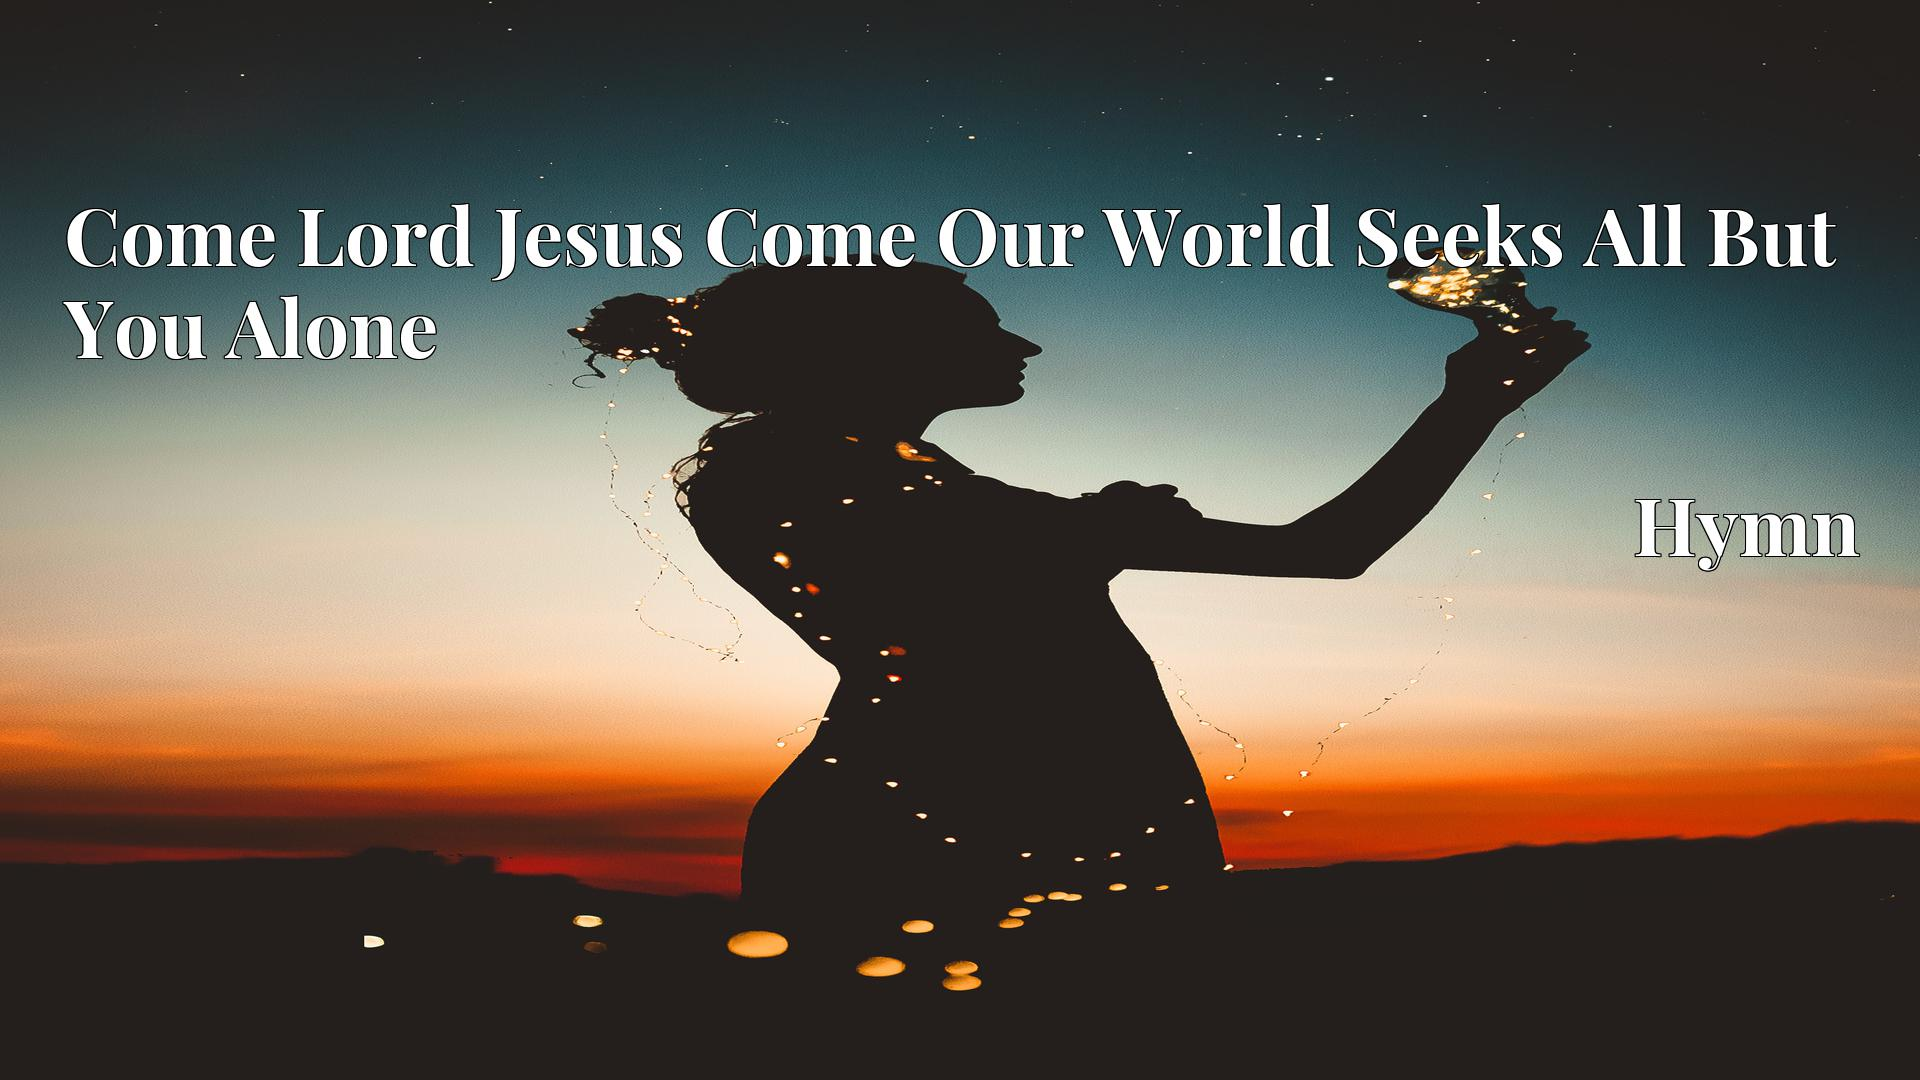 Come Lord Jesus Come Our World Seeks All But You Alone - Hymn